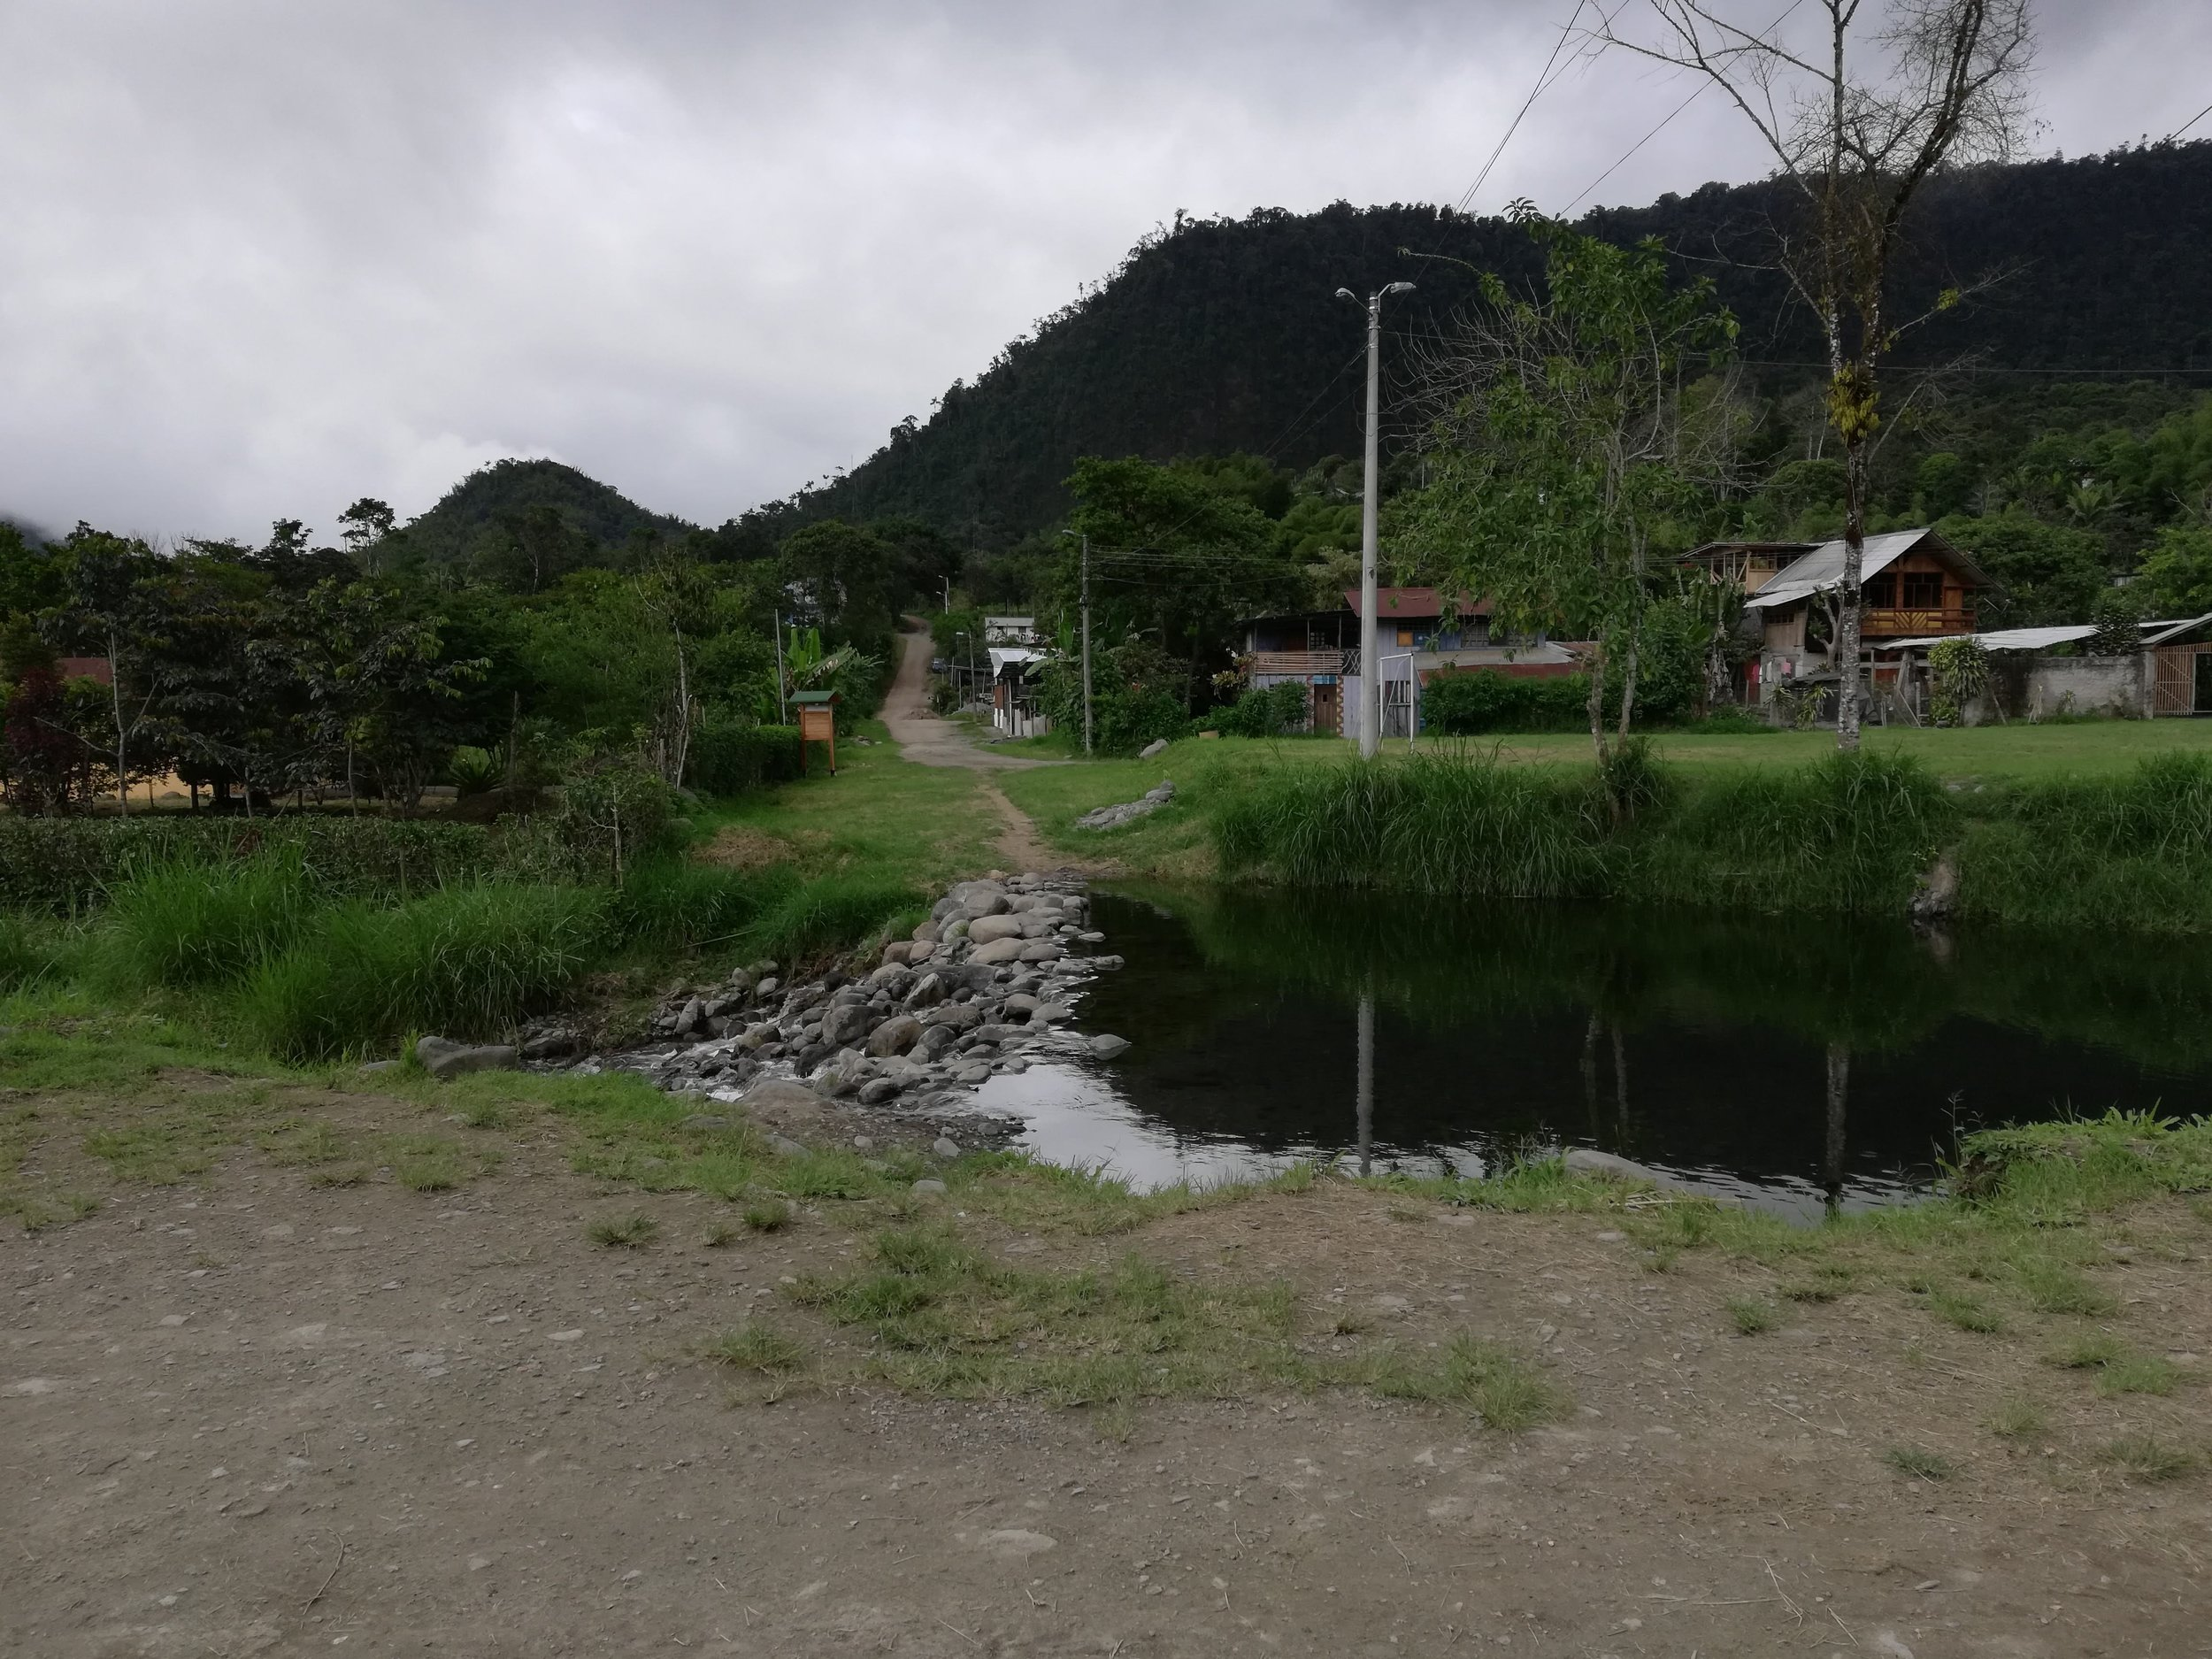 Near the hotel, there's a river that has a natural pool. I try to hop in there whenever I can after a hot day. Mornings are sunny, while in the current rain season, afternoons are overcast or rainy.